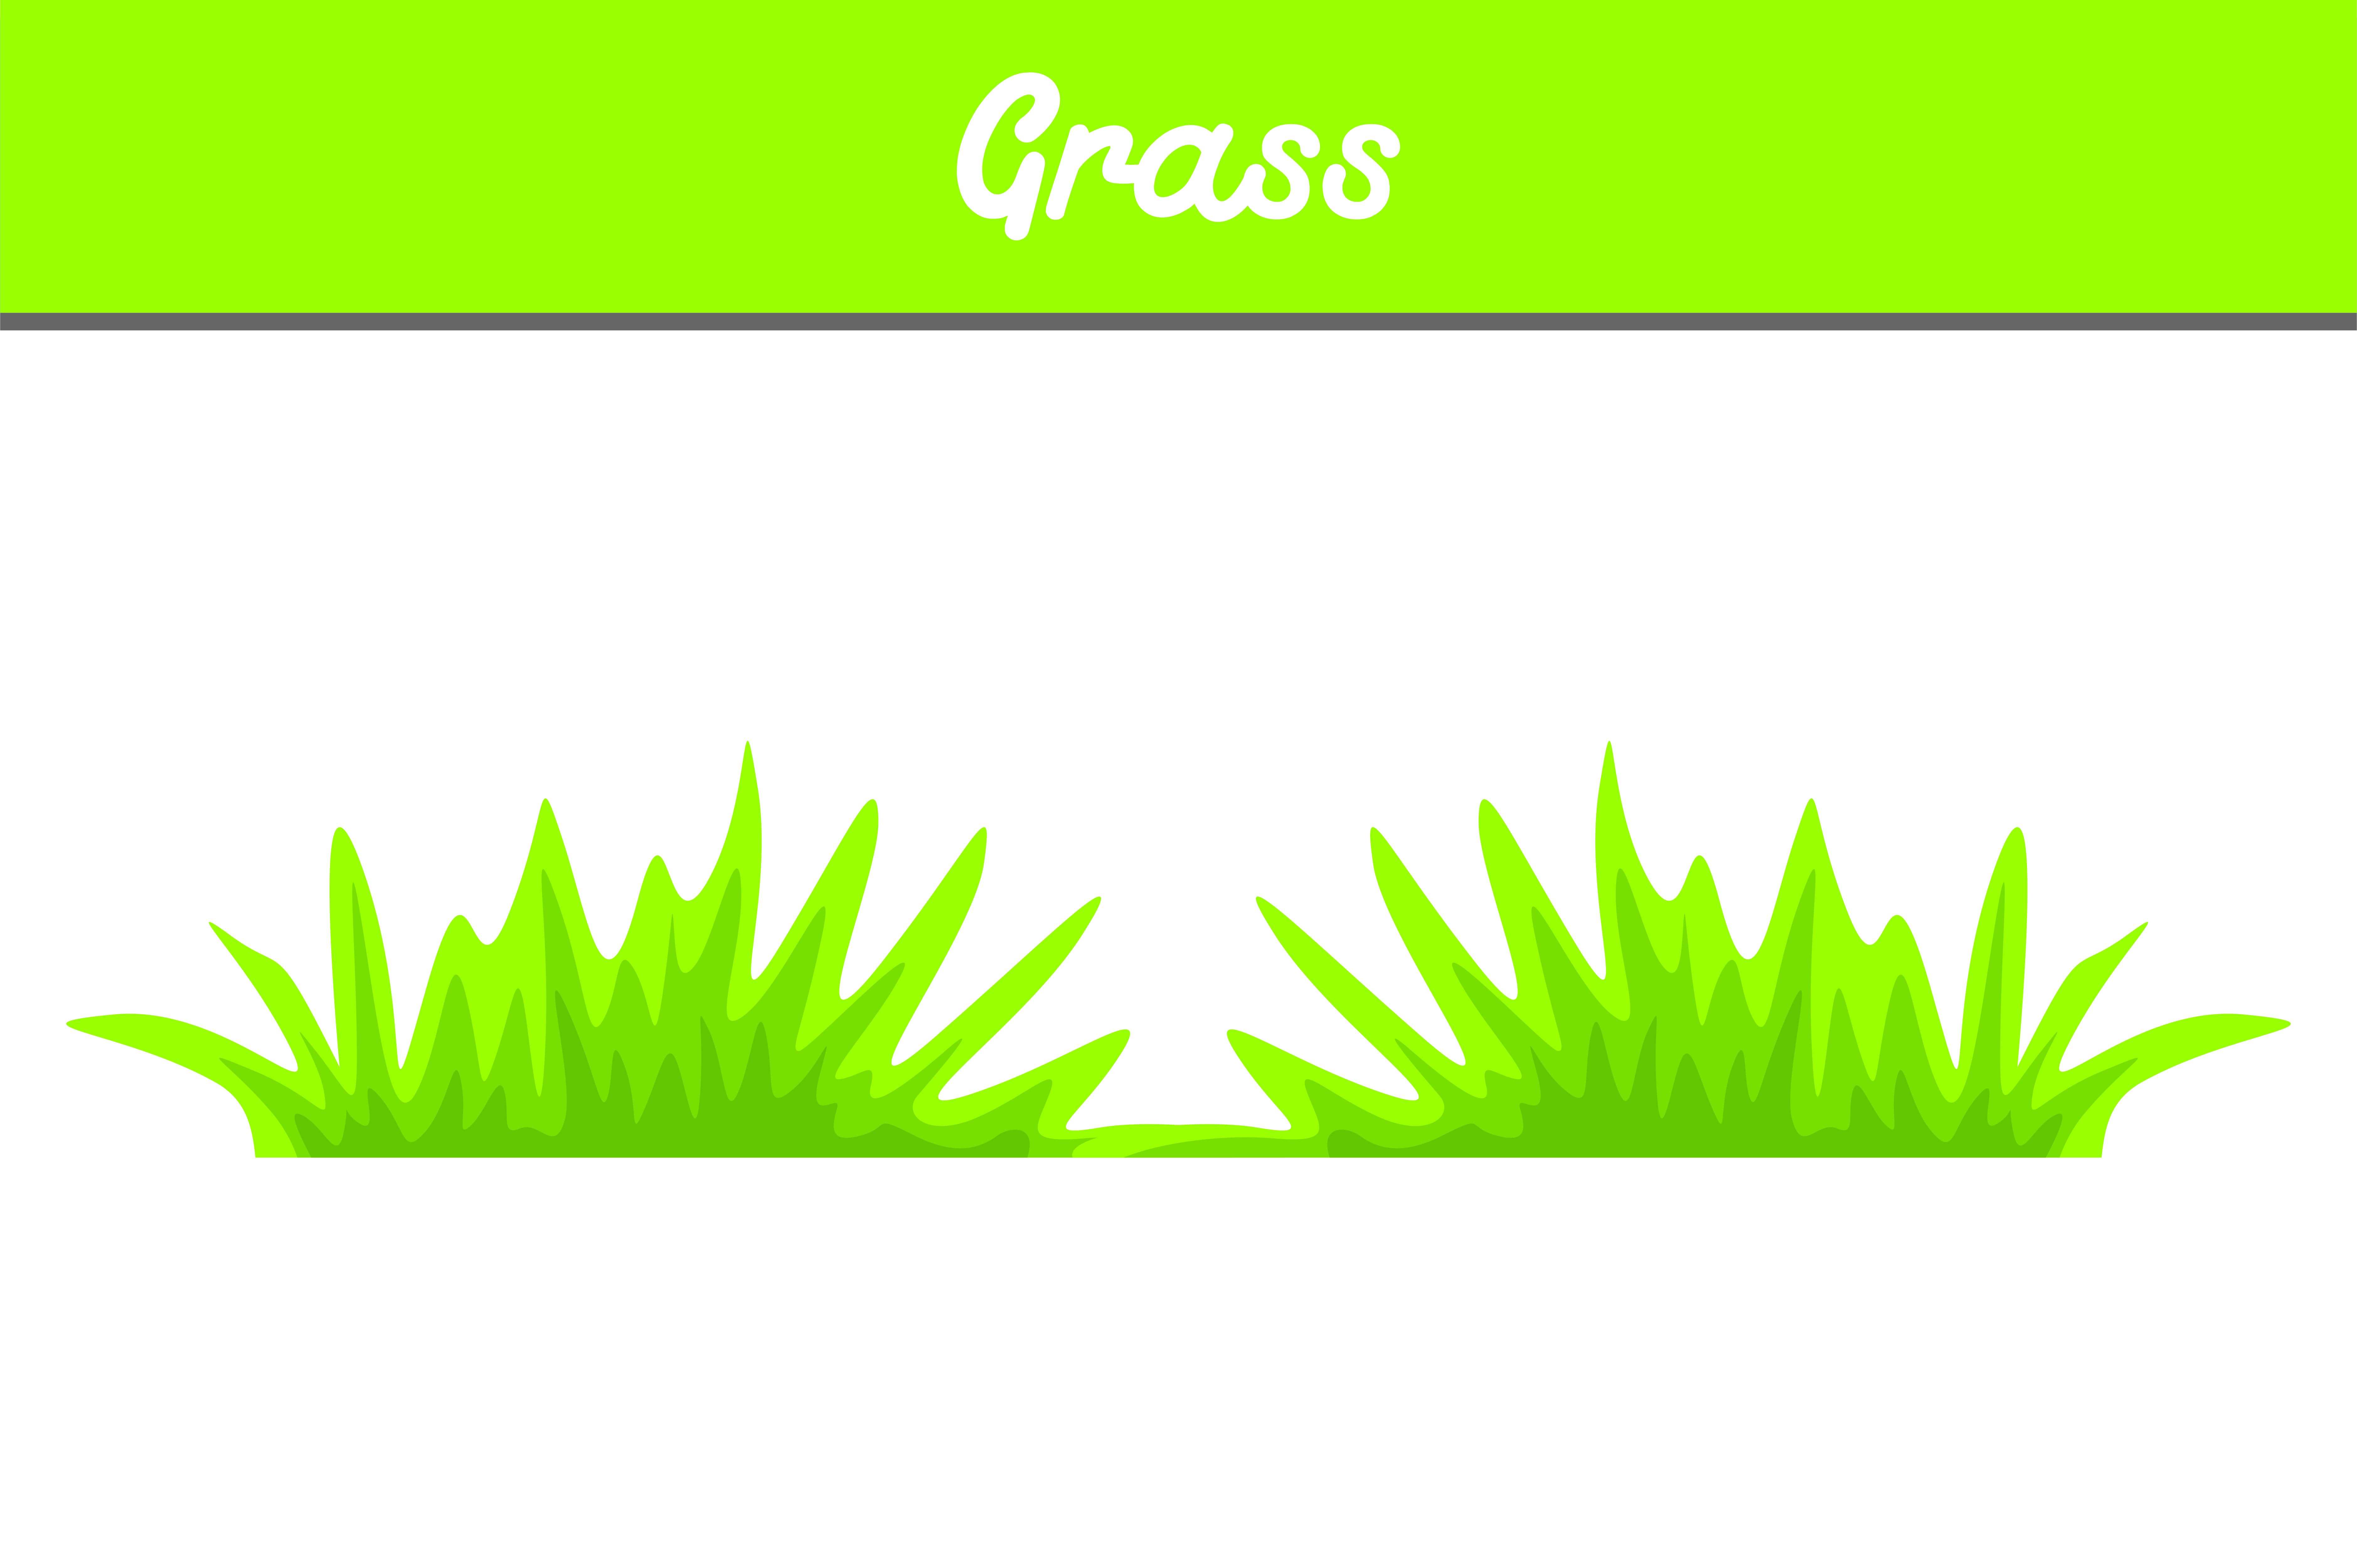 Download Free Grass Vector Graphic By Arief Sapta Adjie Ii Creative Fabrica for Cricut Explore, Silhouette and other cutting machines.